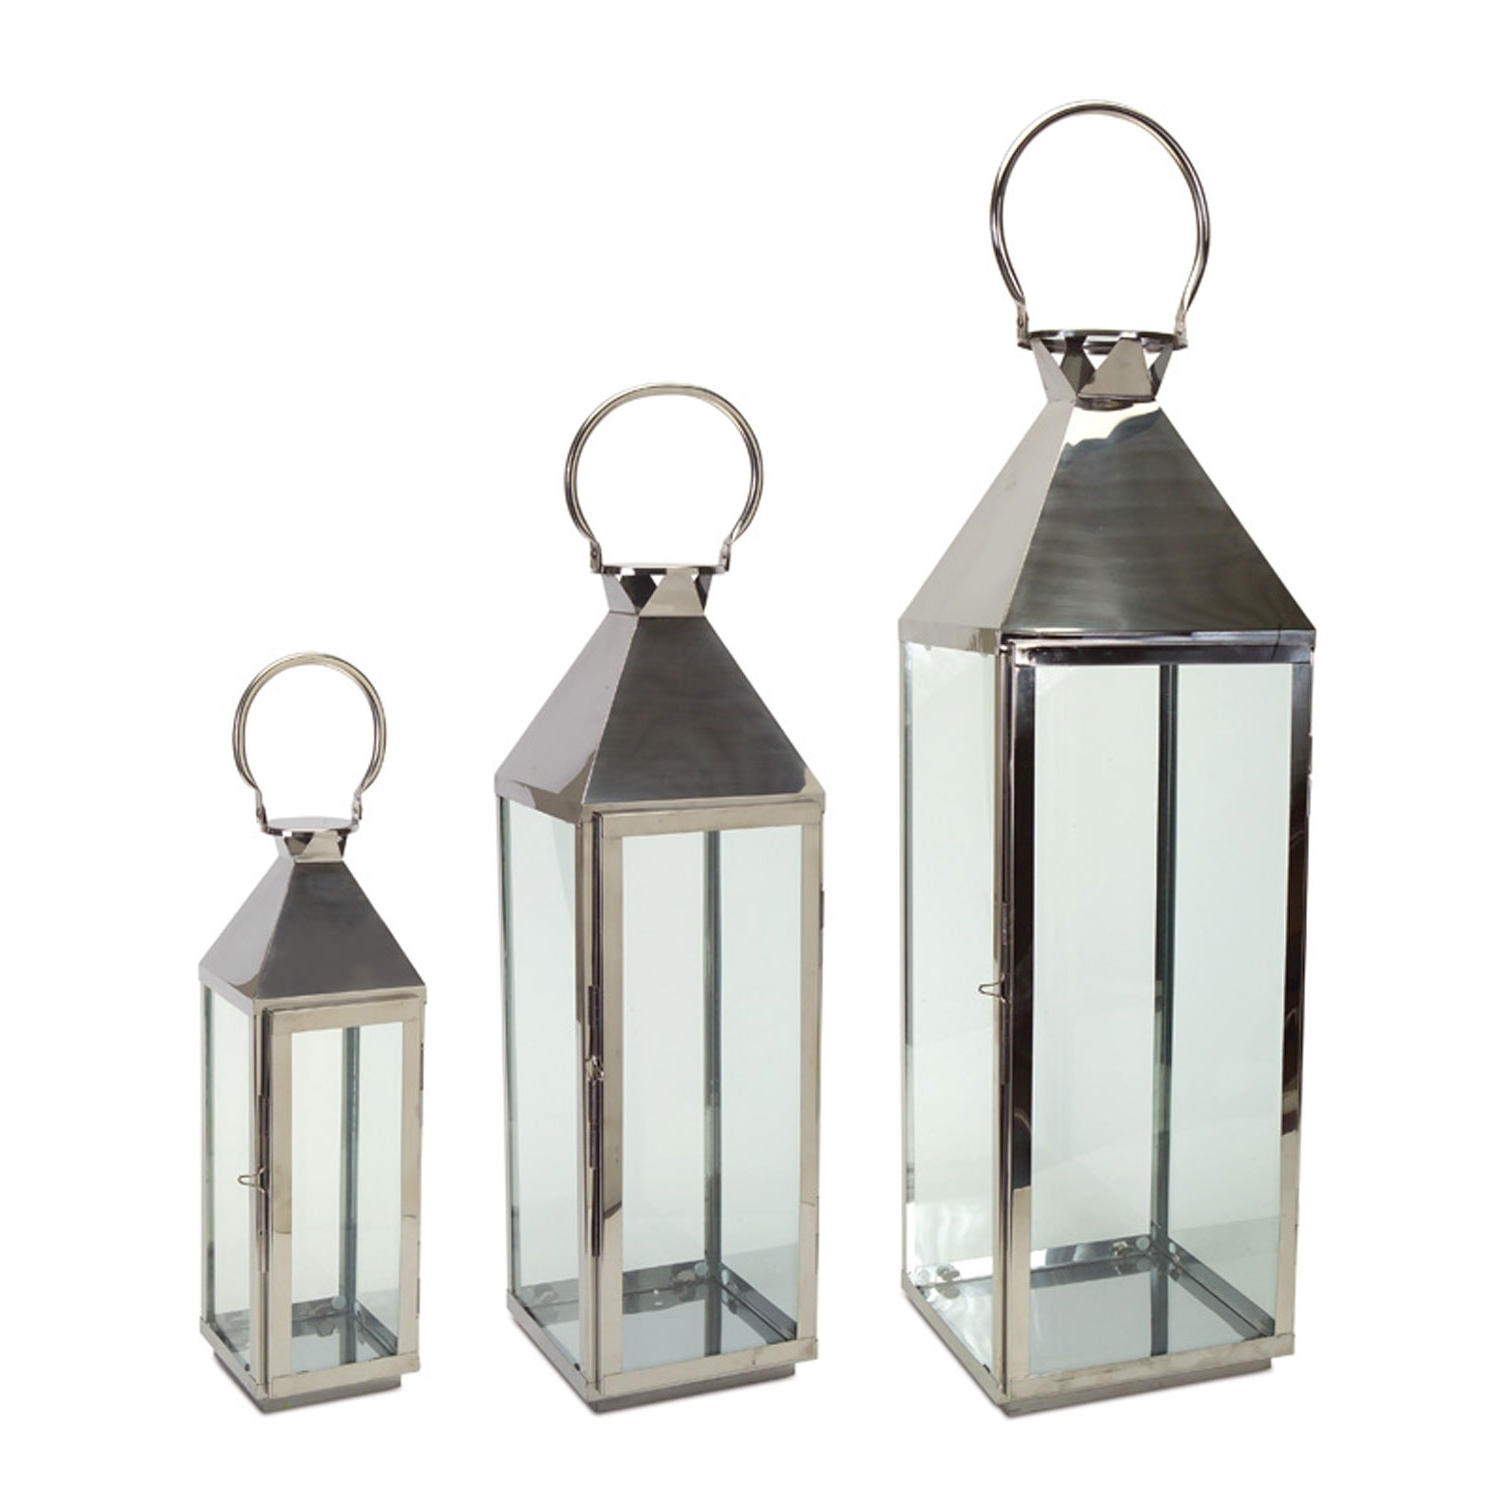 Most Current Hanging Outdoor Tea Light Lanterns Throughout Candle Lanterns, Outdoor Hanging Lanterns, Decorative On Sale (View 9 of 20)